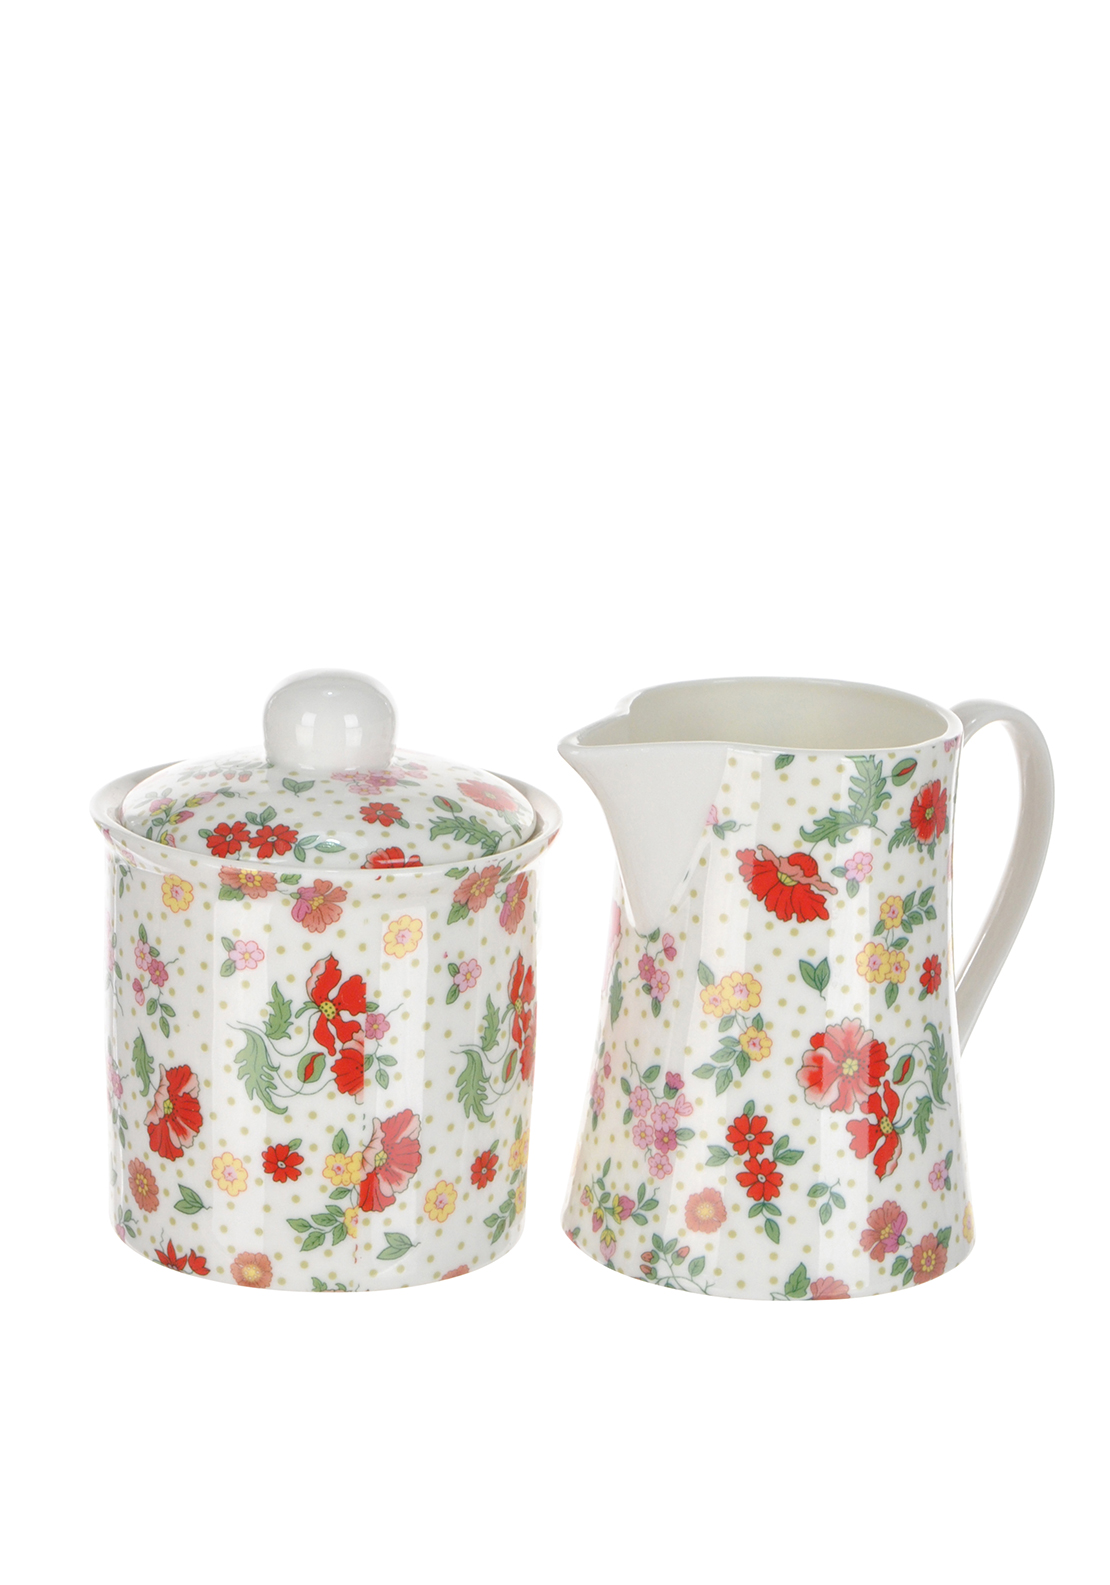 Shannon Bridge Ireland Miss Poppie 2 Piece Set, White/Multi floral Design